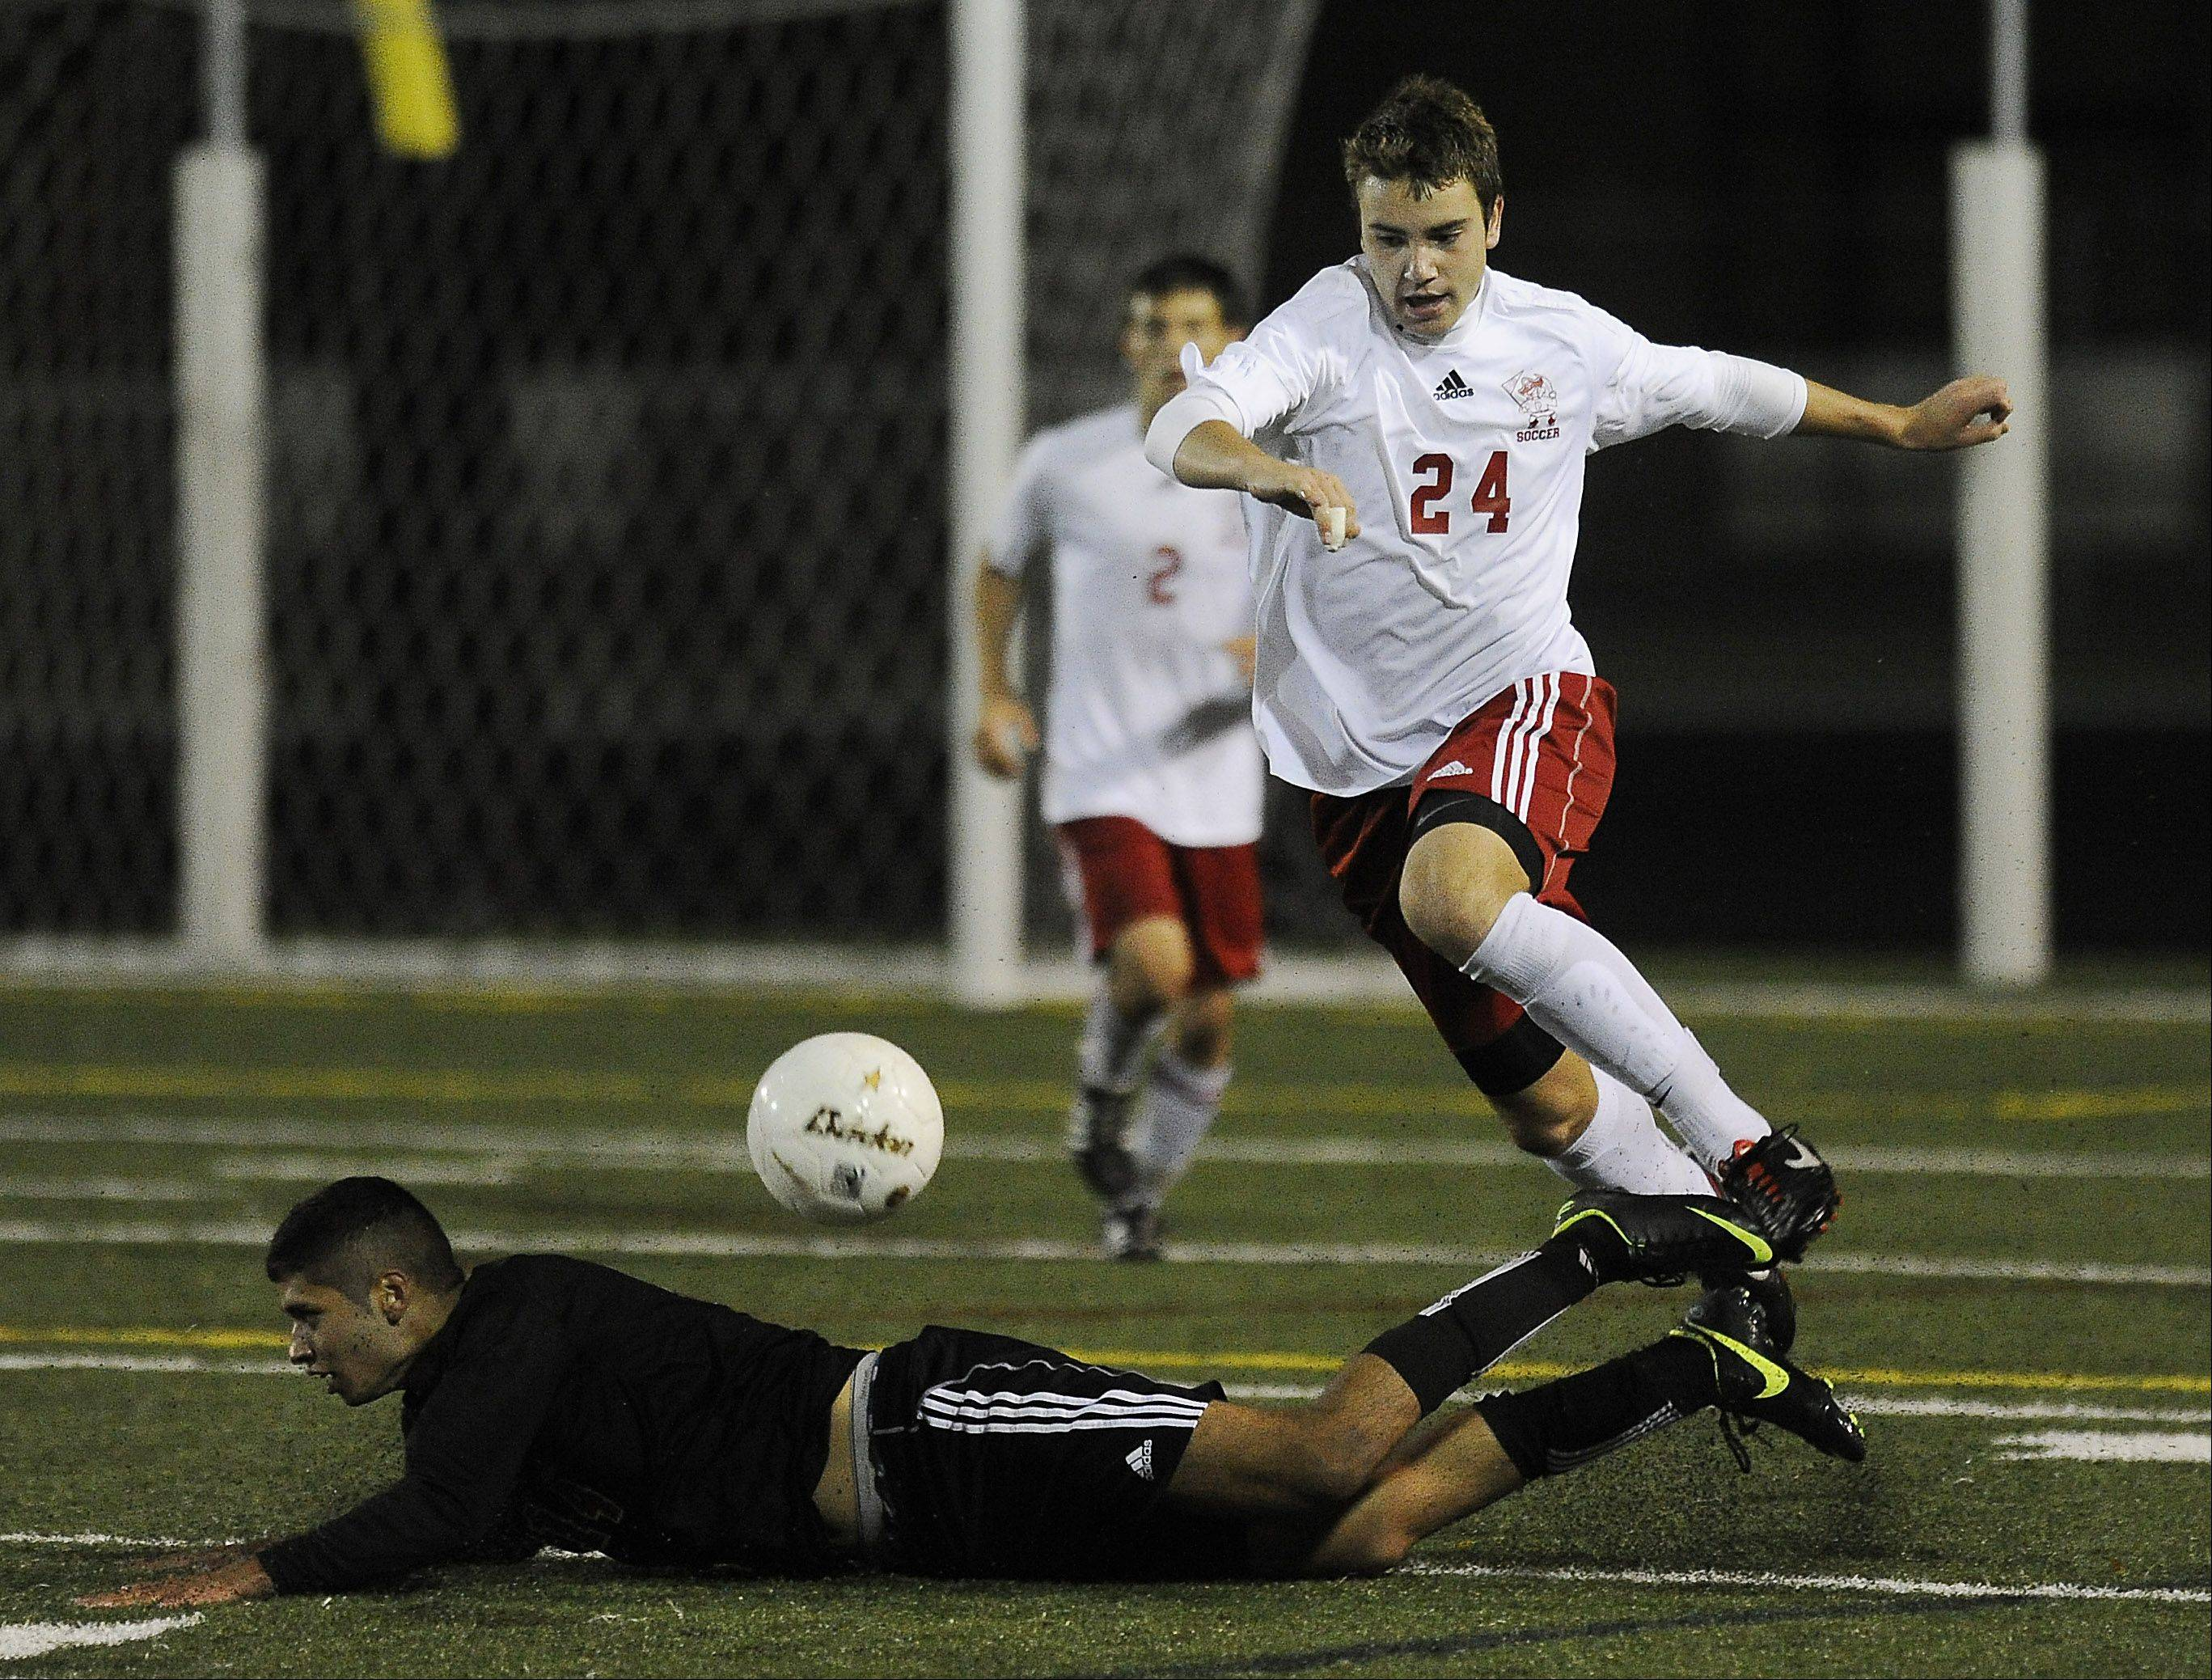 Palatine's Jeremy Velinski hurdles Barrington's Fernando Telles during the Pirates' 1-0 MSL West-clinching victory last Thursday.